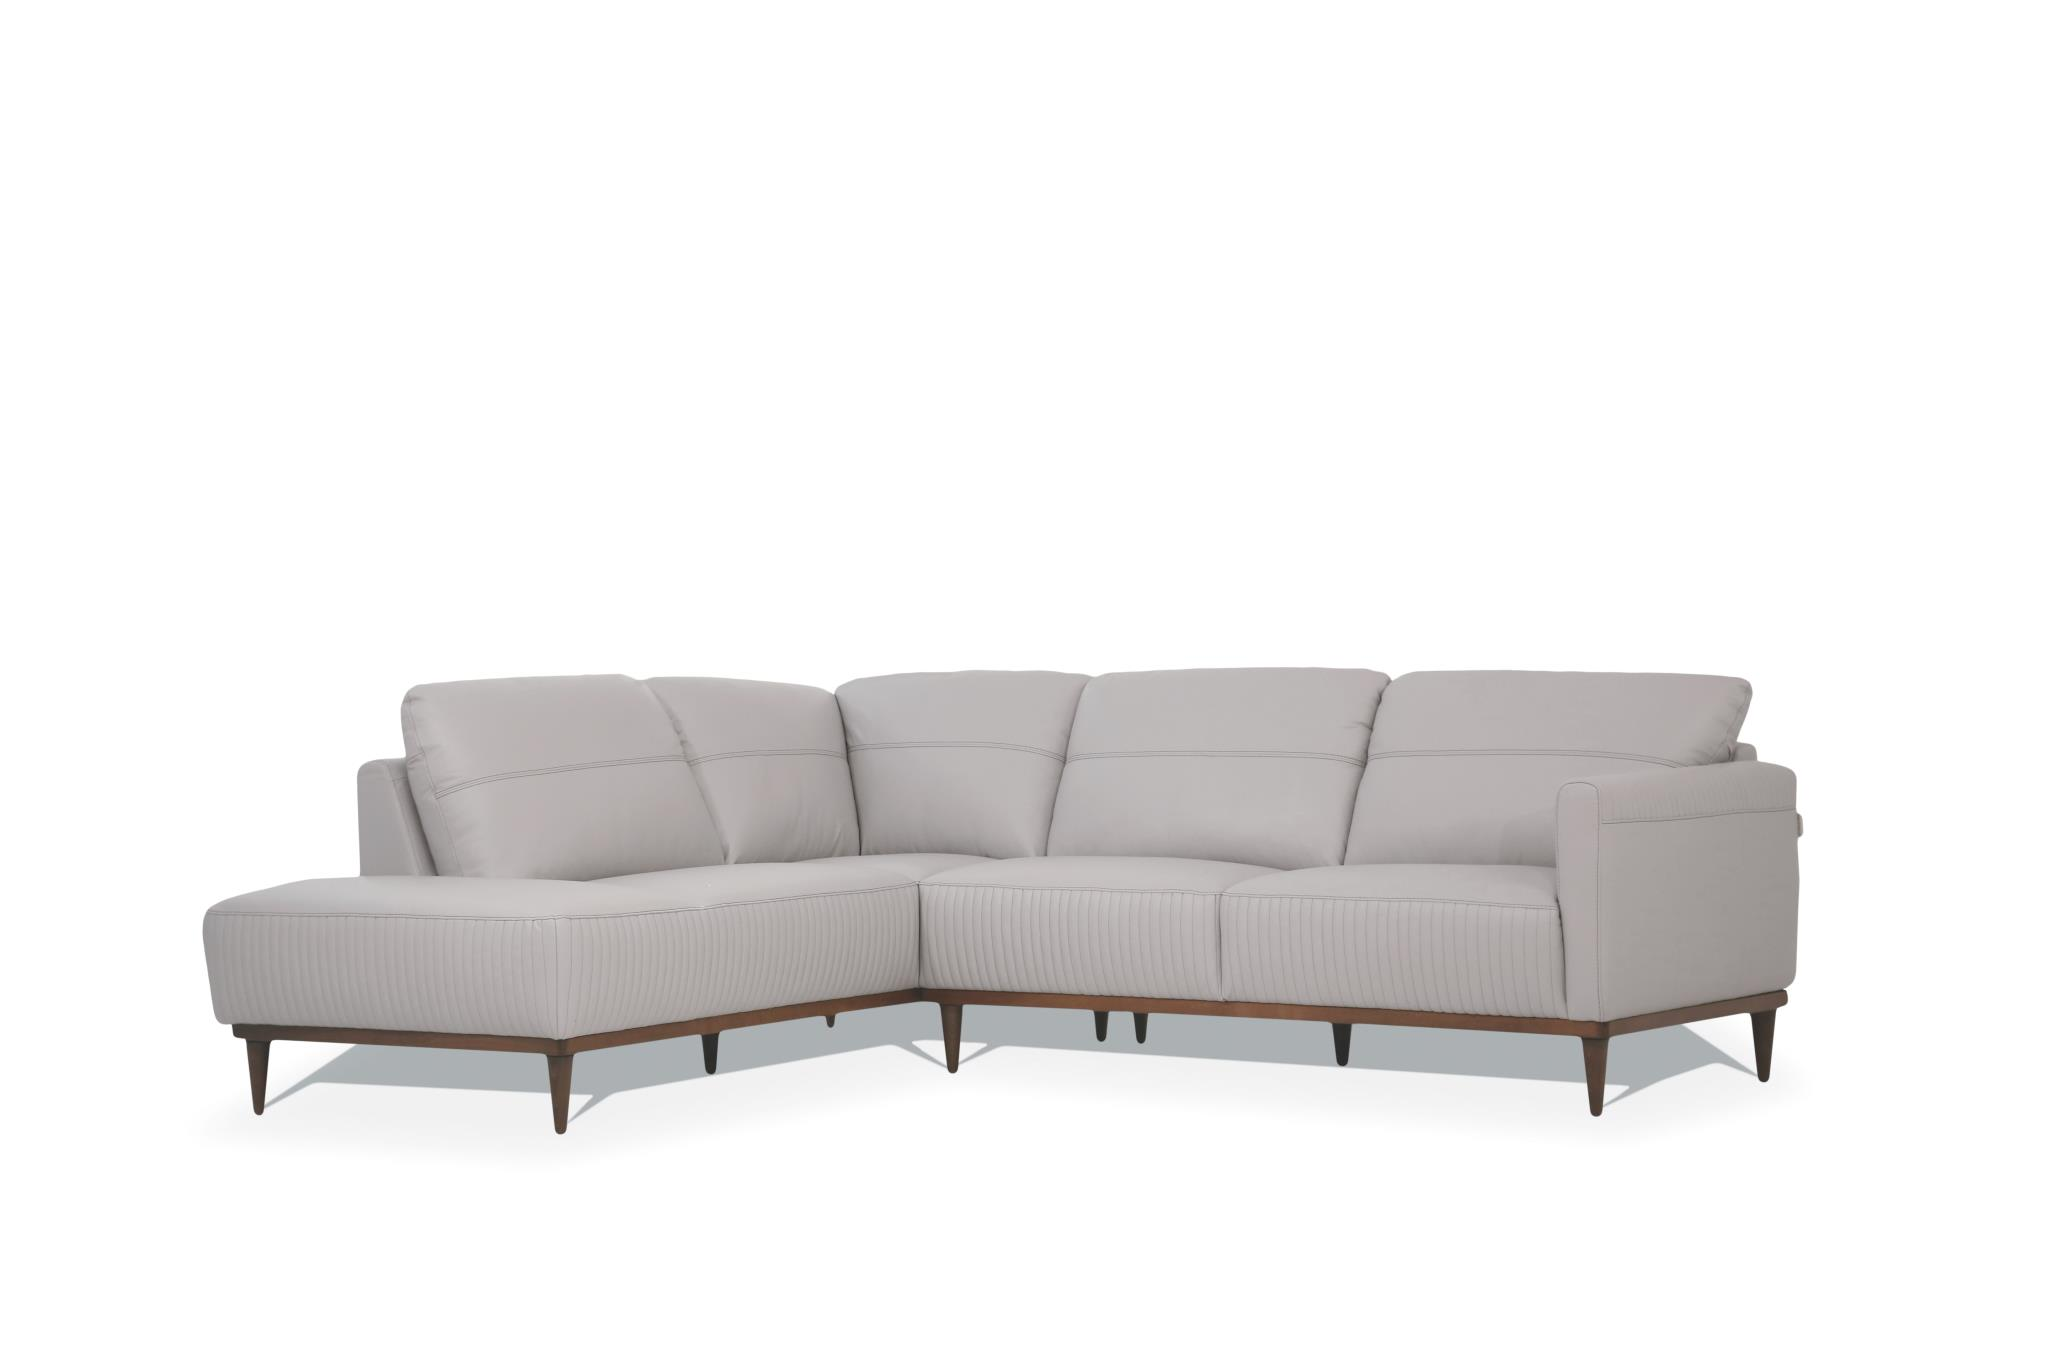 Pearl Gray Sectional Sofa w/ Left Facing Chaise Angle